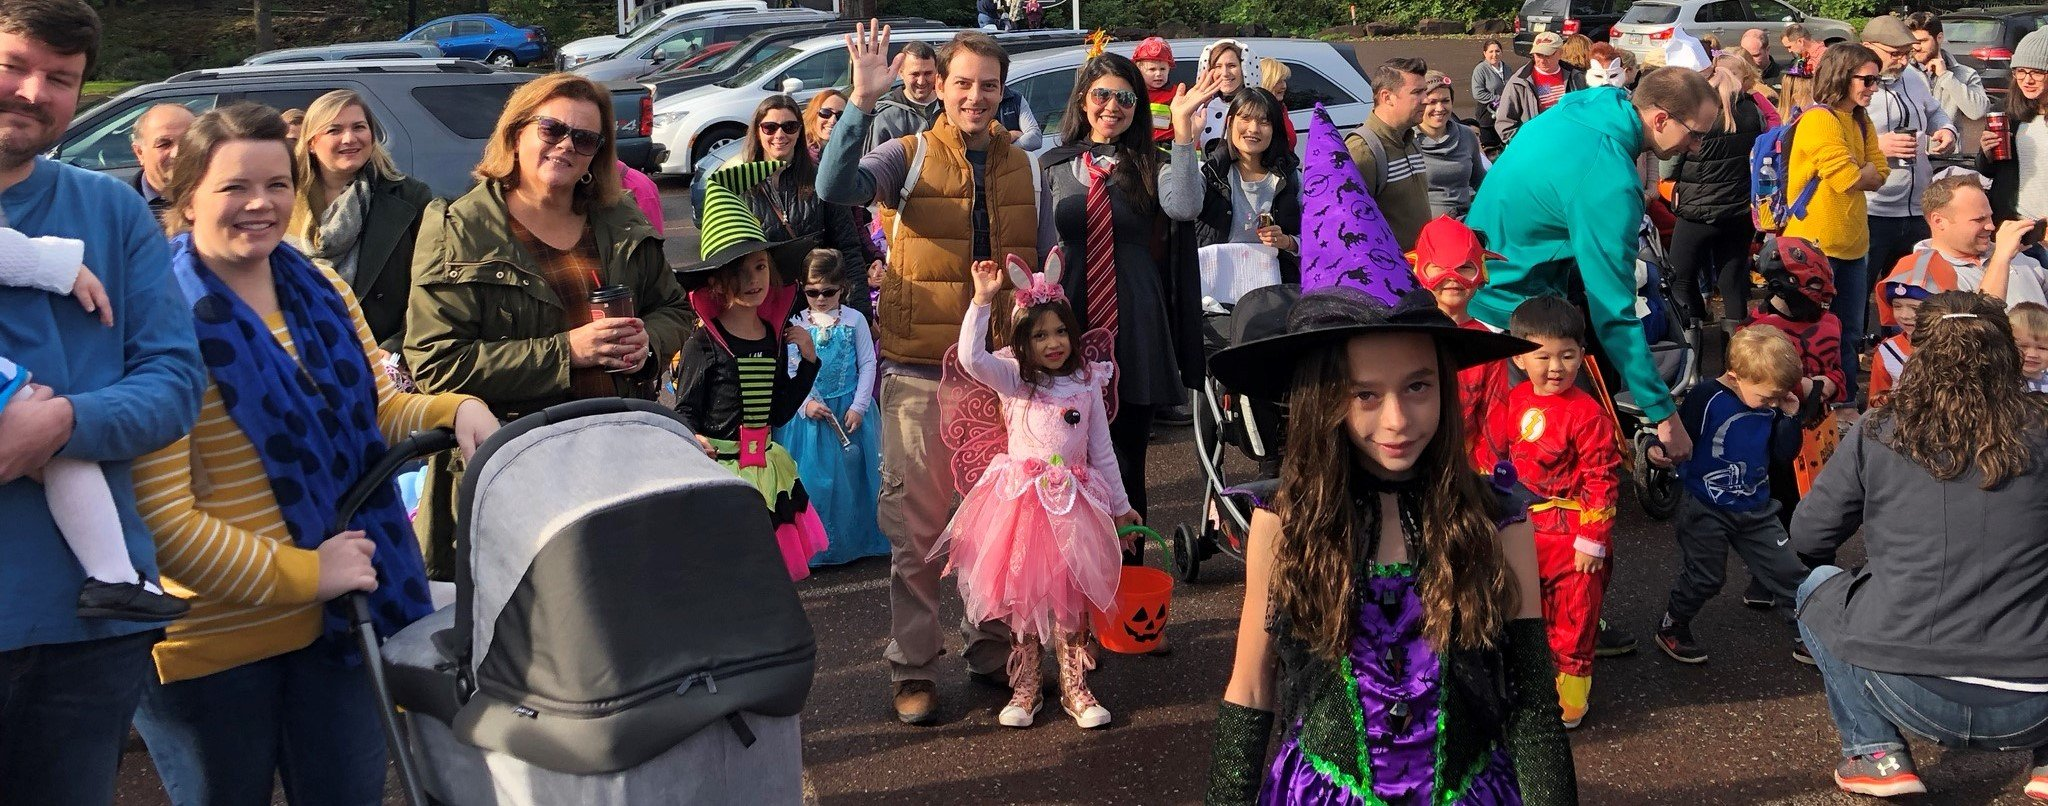 Kunkletown Halloween Parade 2020 Events   Floral and Hardy of Skippack